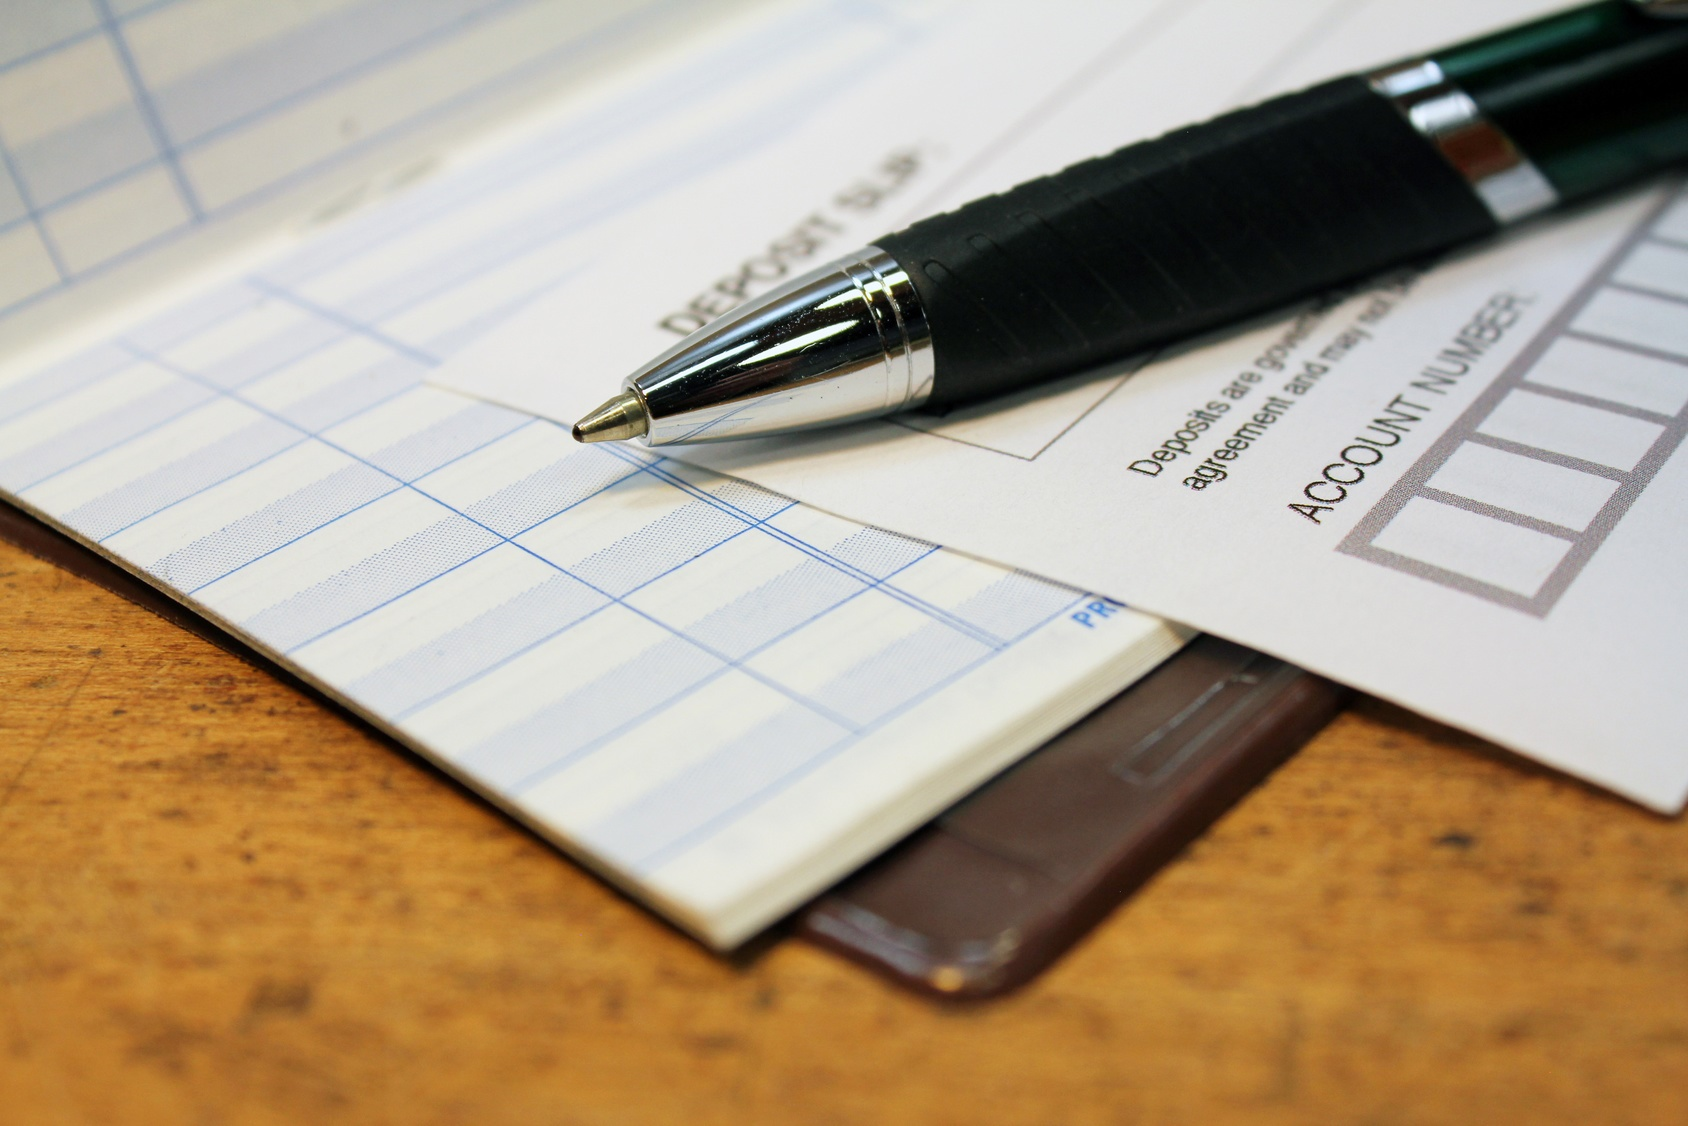 Paper deposit slip and pen with check ledger over wood background